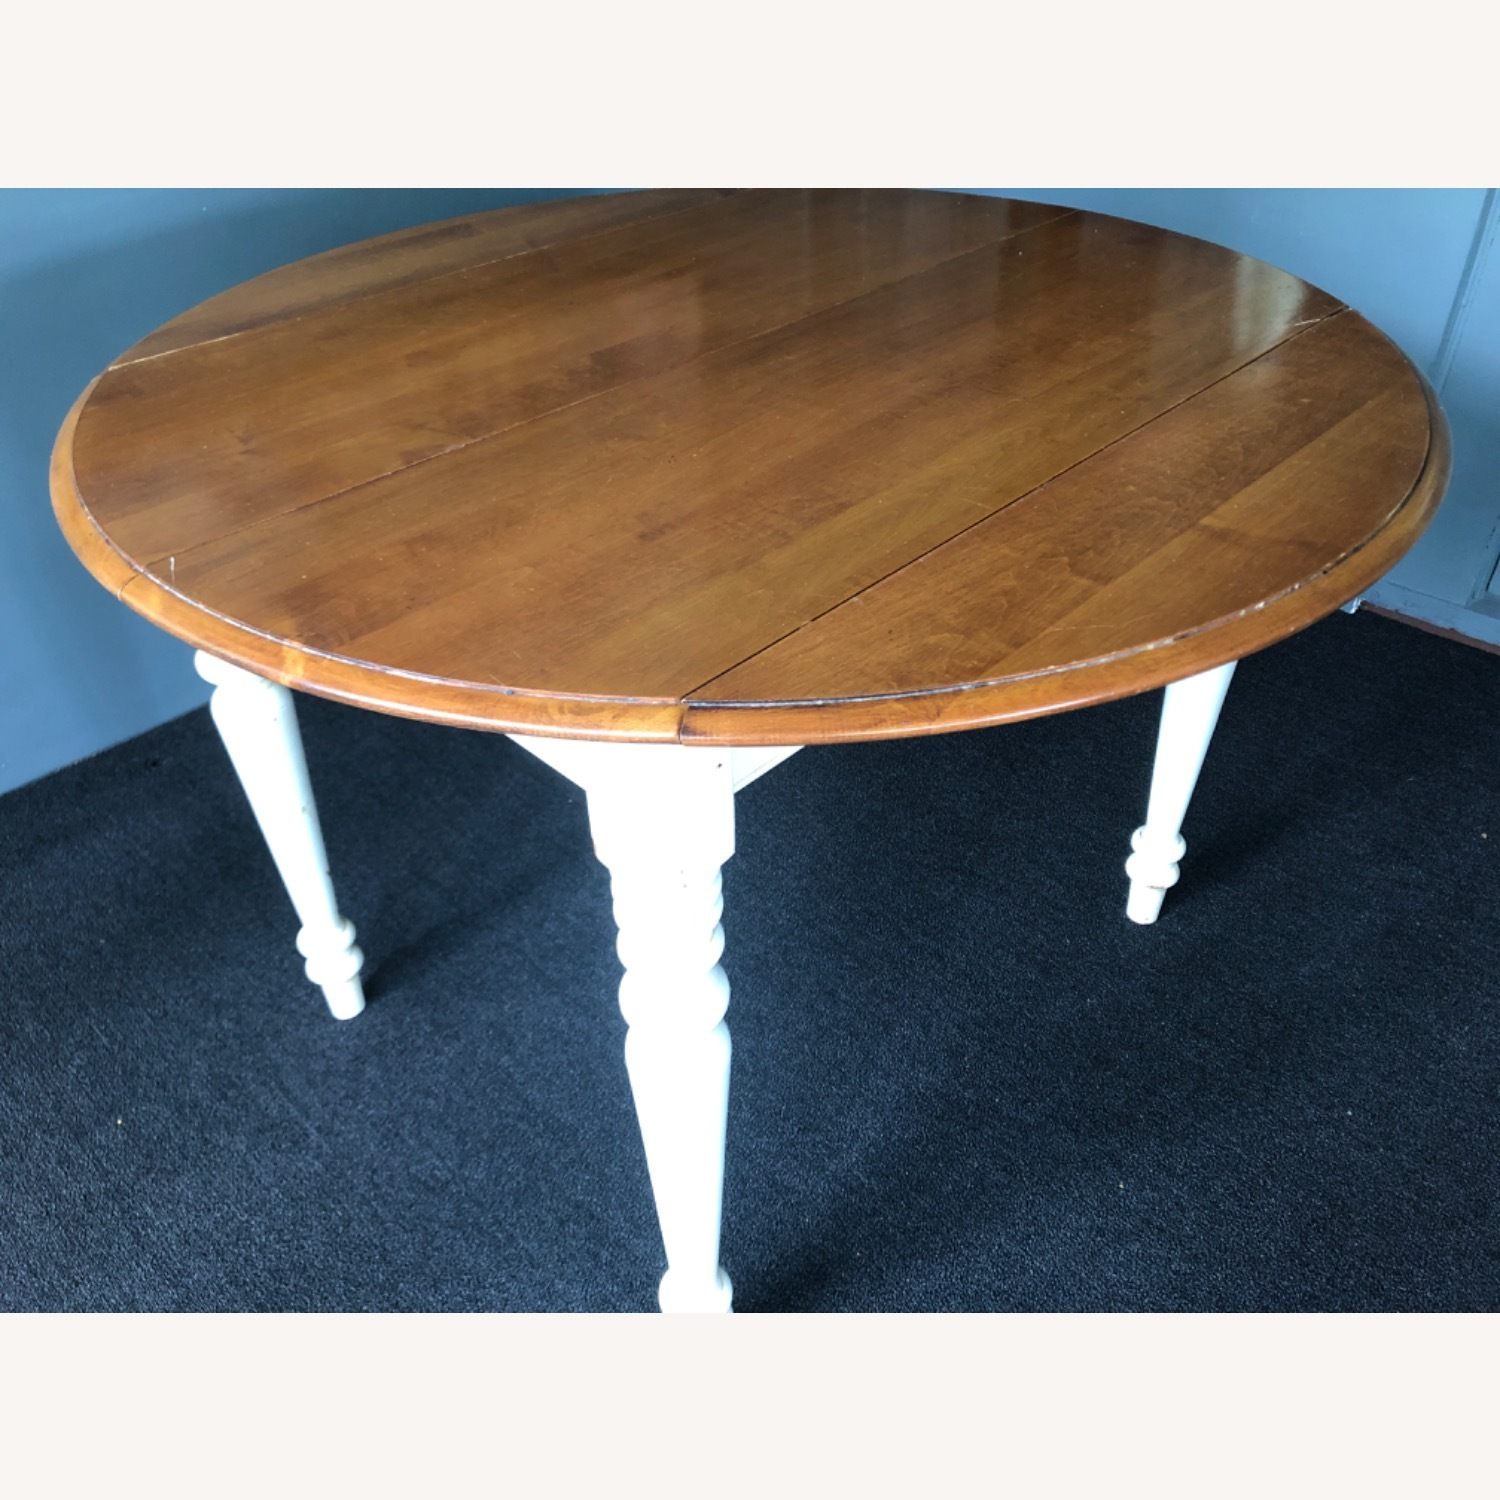 Ethan Allen Kitchen Table Round French Country - image-2